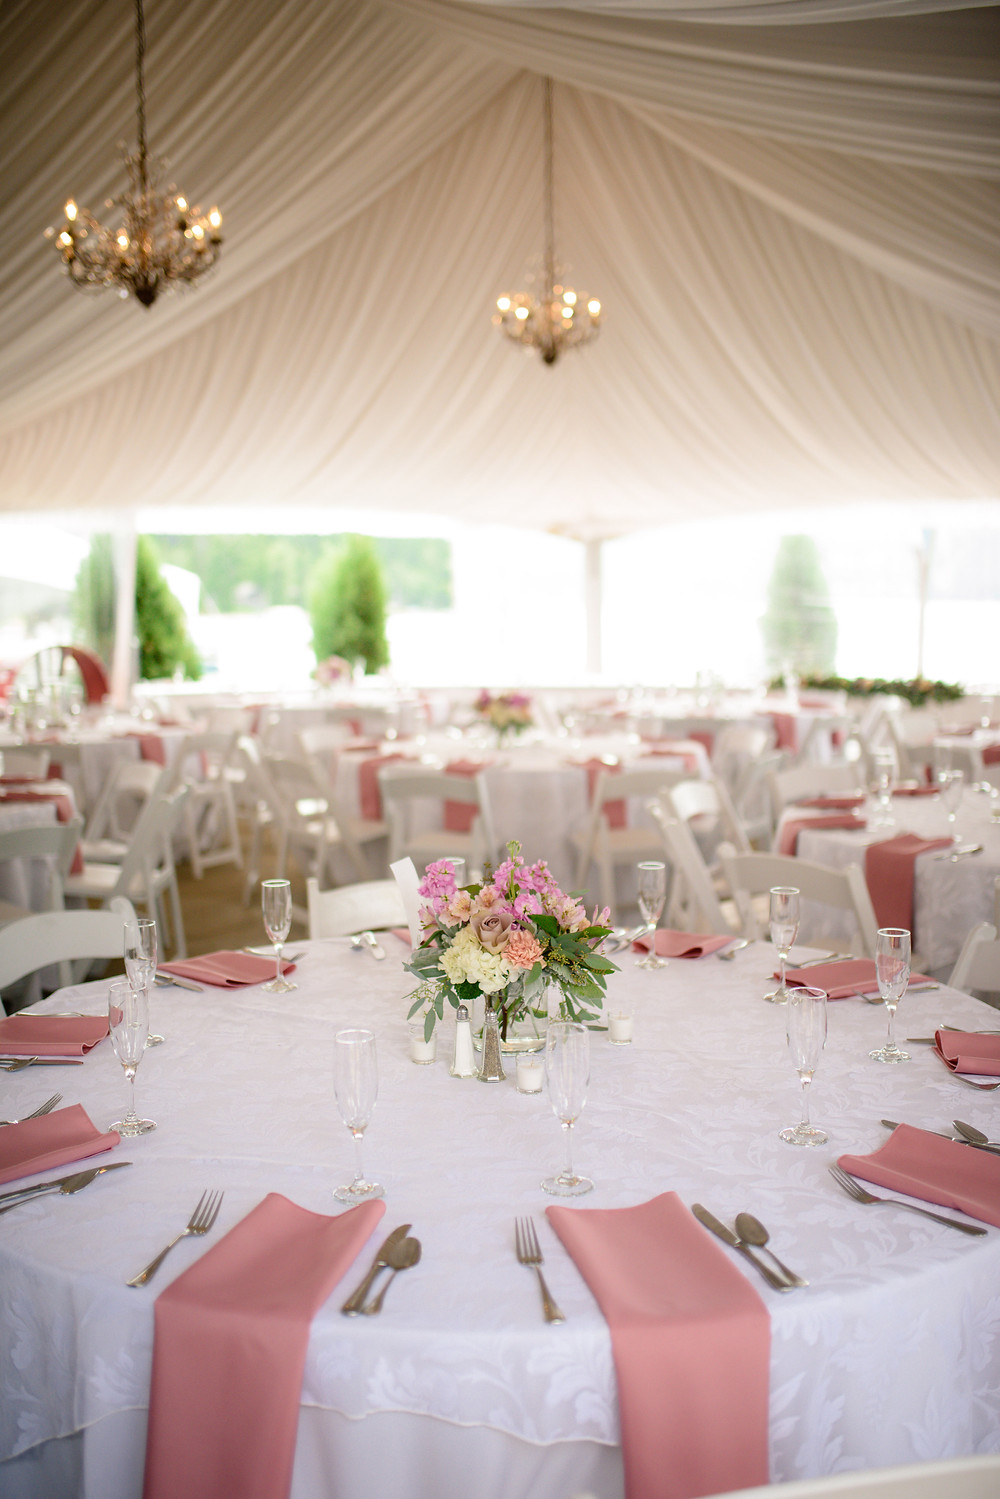 Empress Tents & Events; Carrie Ann Photography